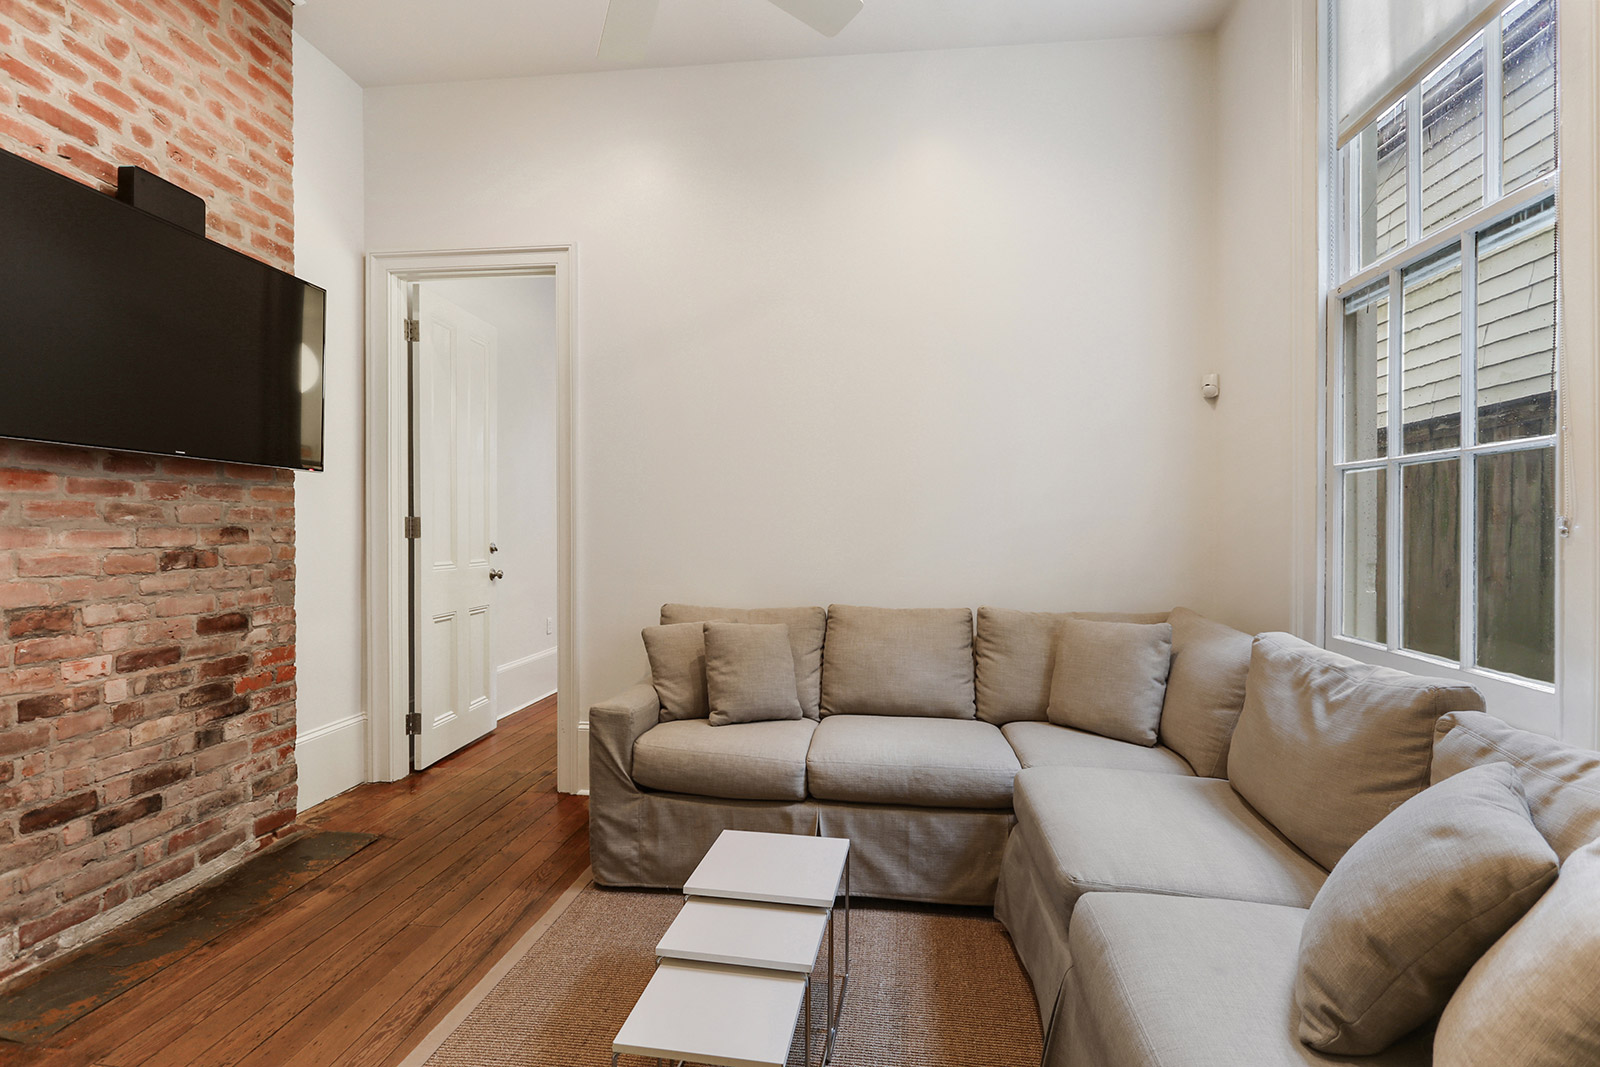 Uptown, Condo, 1 beds, 1.5 baths, $2800 per month New Orleans Rental - devie image_5